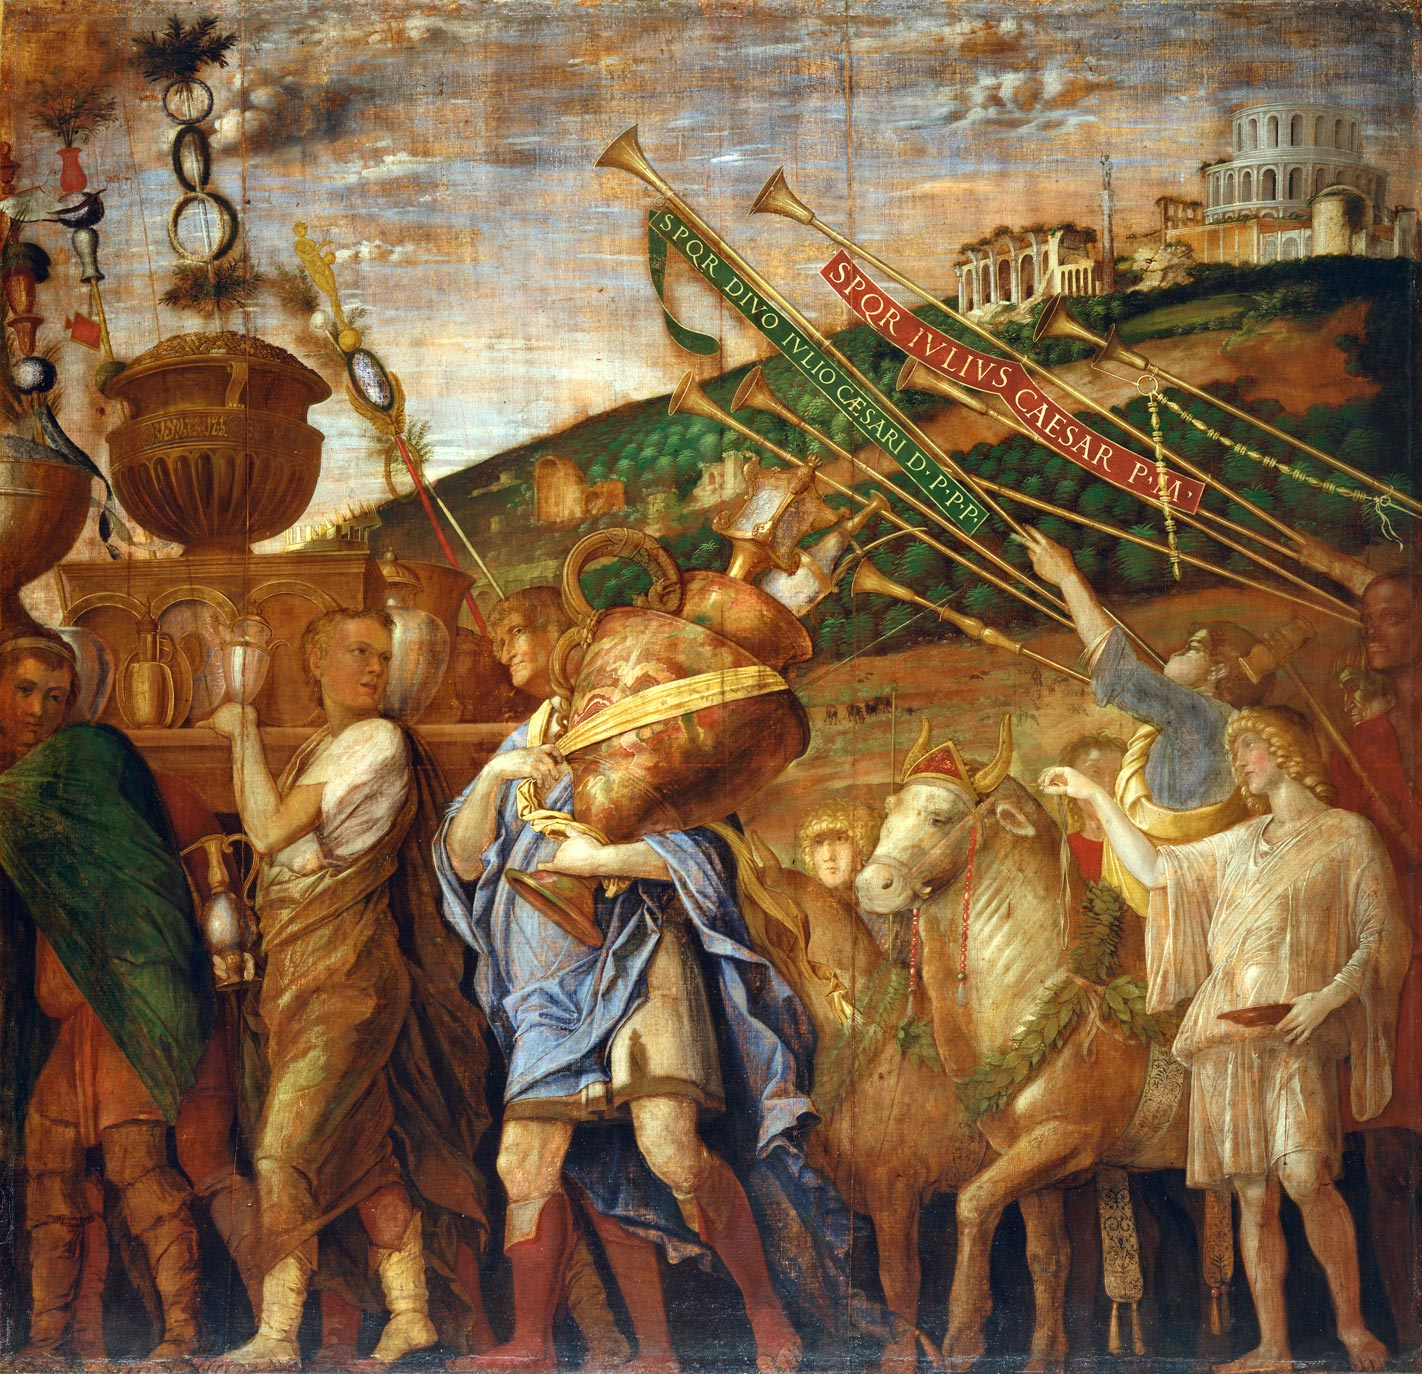 http://mini-site.louvre.fr/mantegna/images/section9/zoom/09_06.jpg